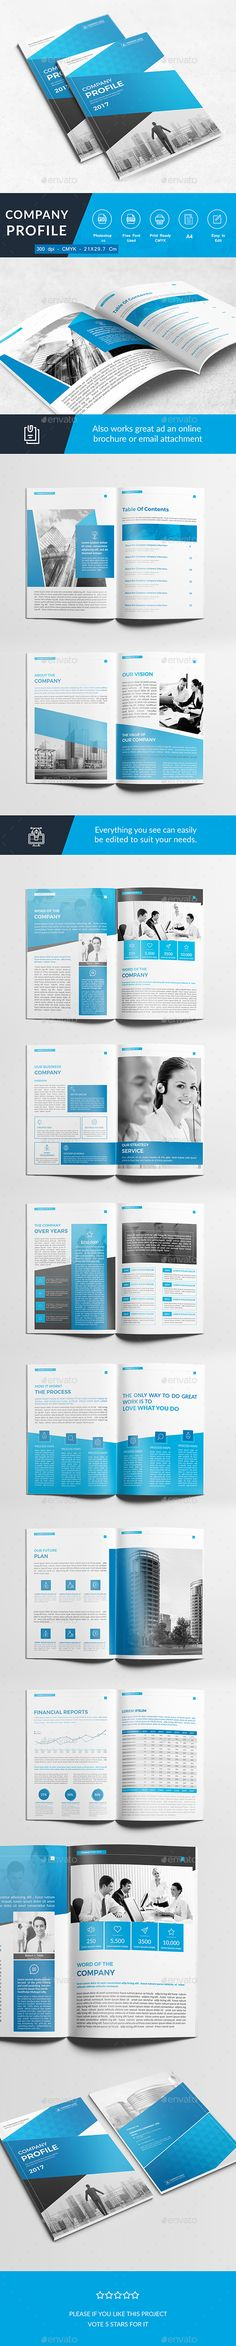 Company Profile #photoshop #psd #a4 #book • Download ➝ https://graphicriver.net/item/company-profile/18673081?ref=pxcr